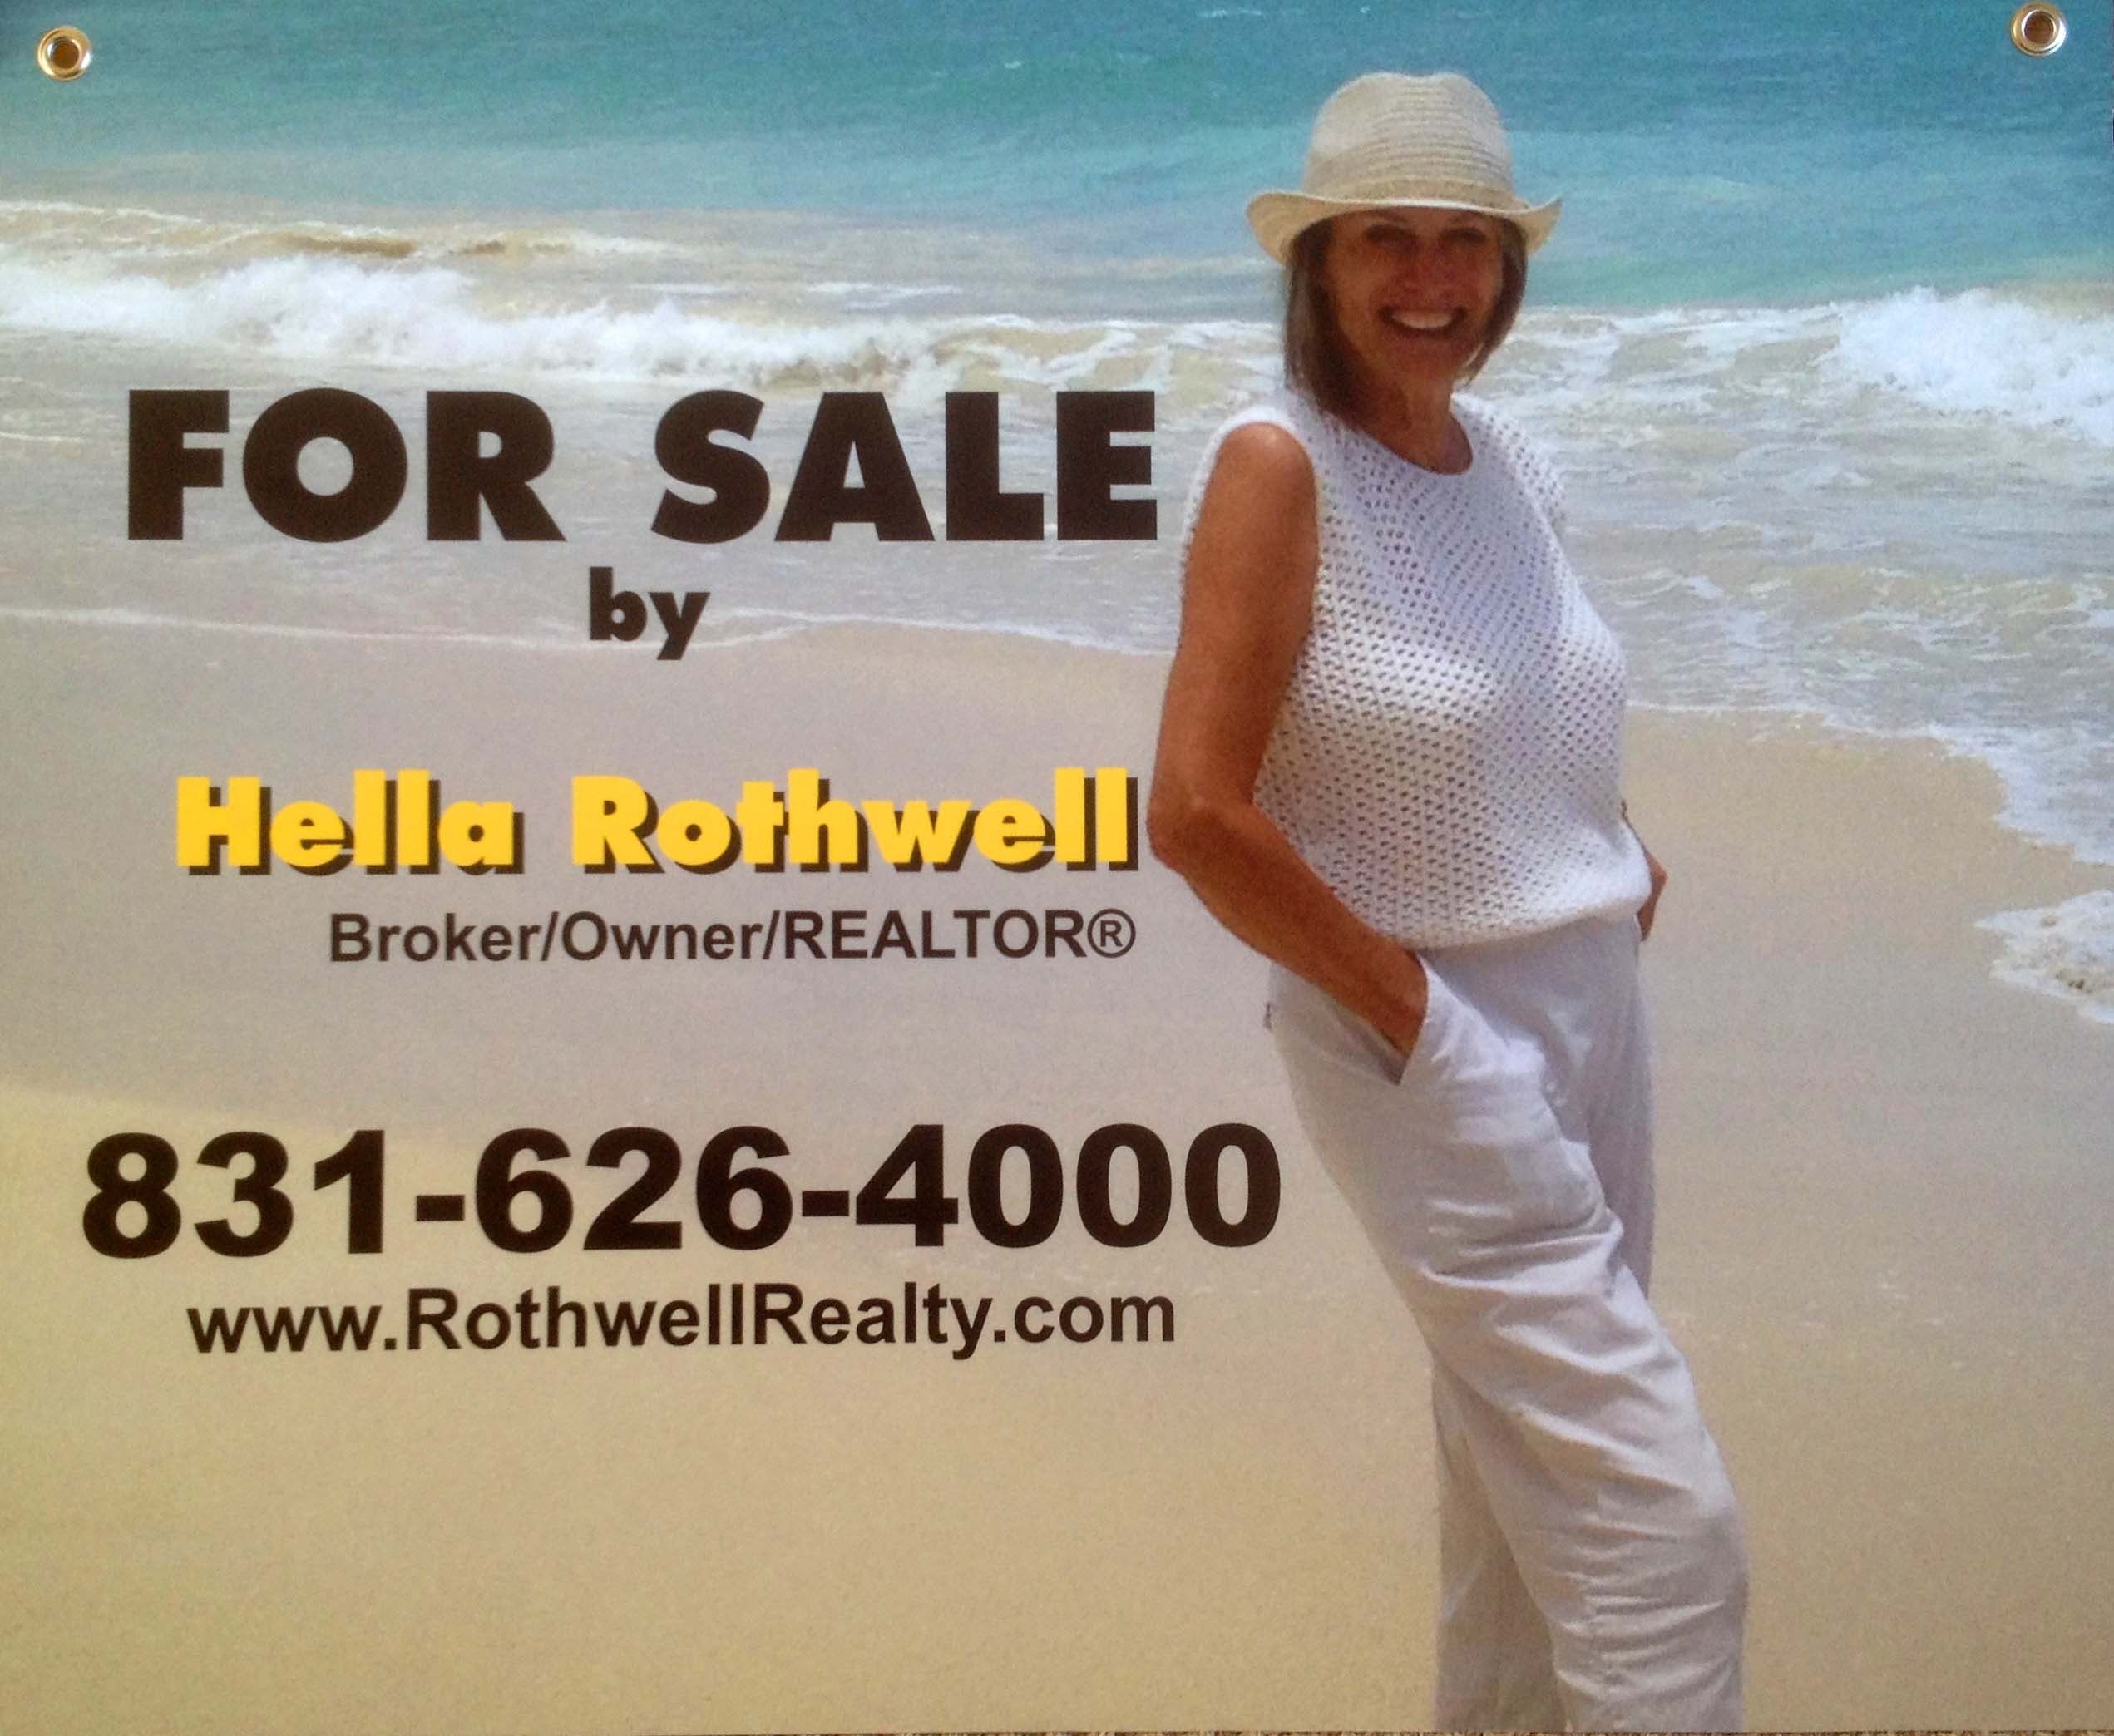 Hella Rothwell real estate yard sign